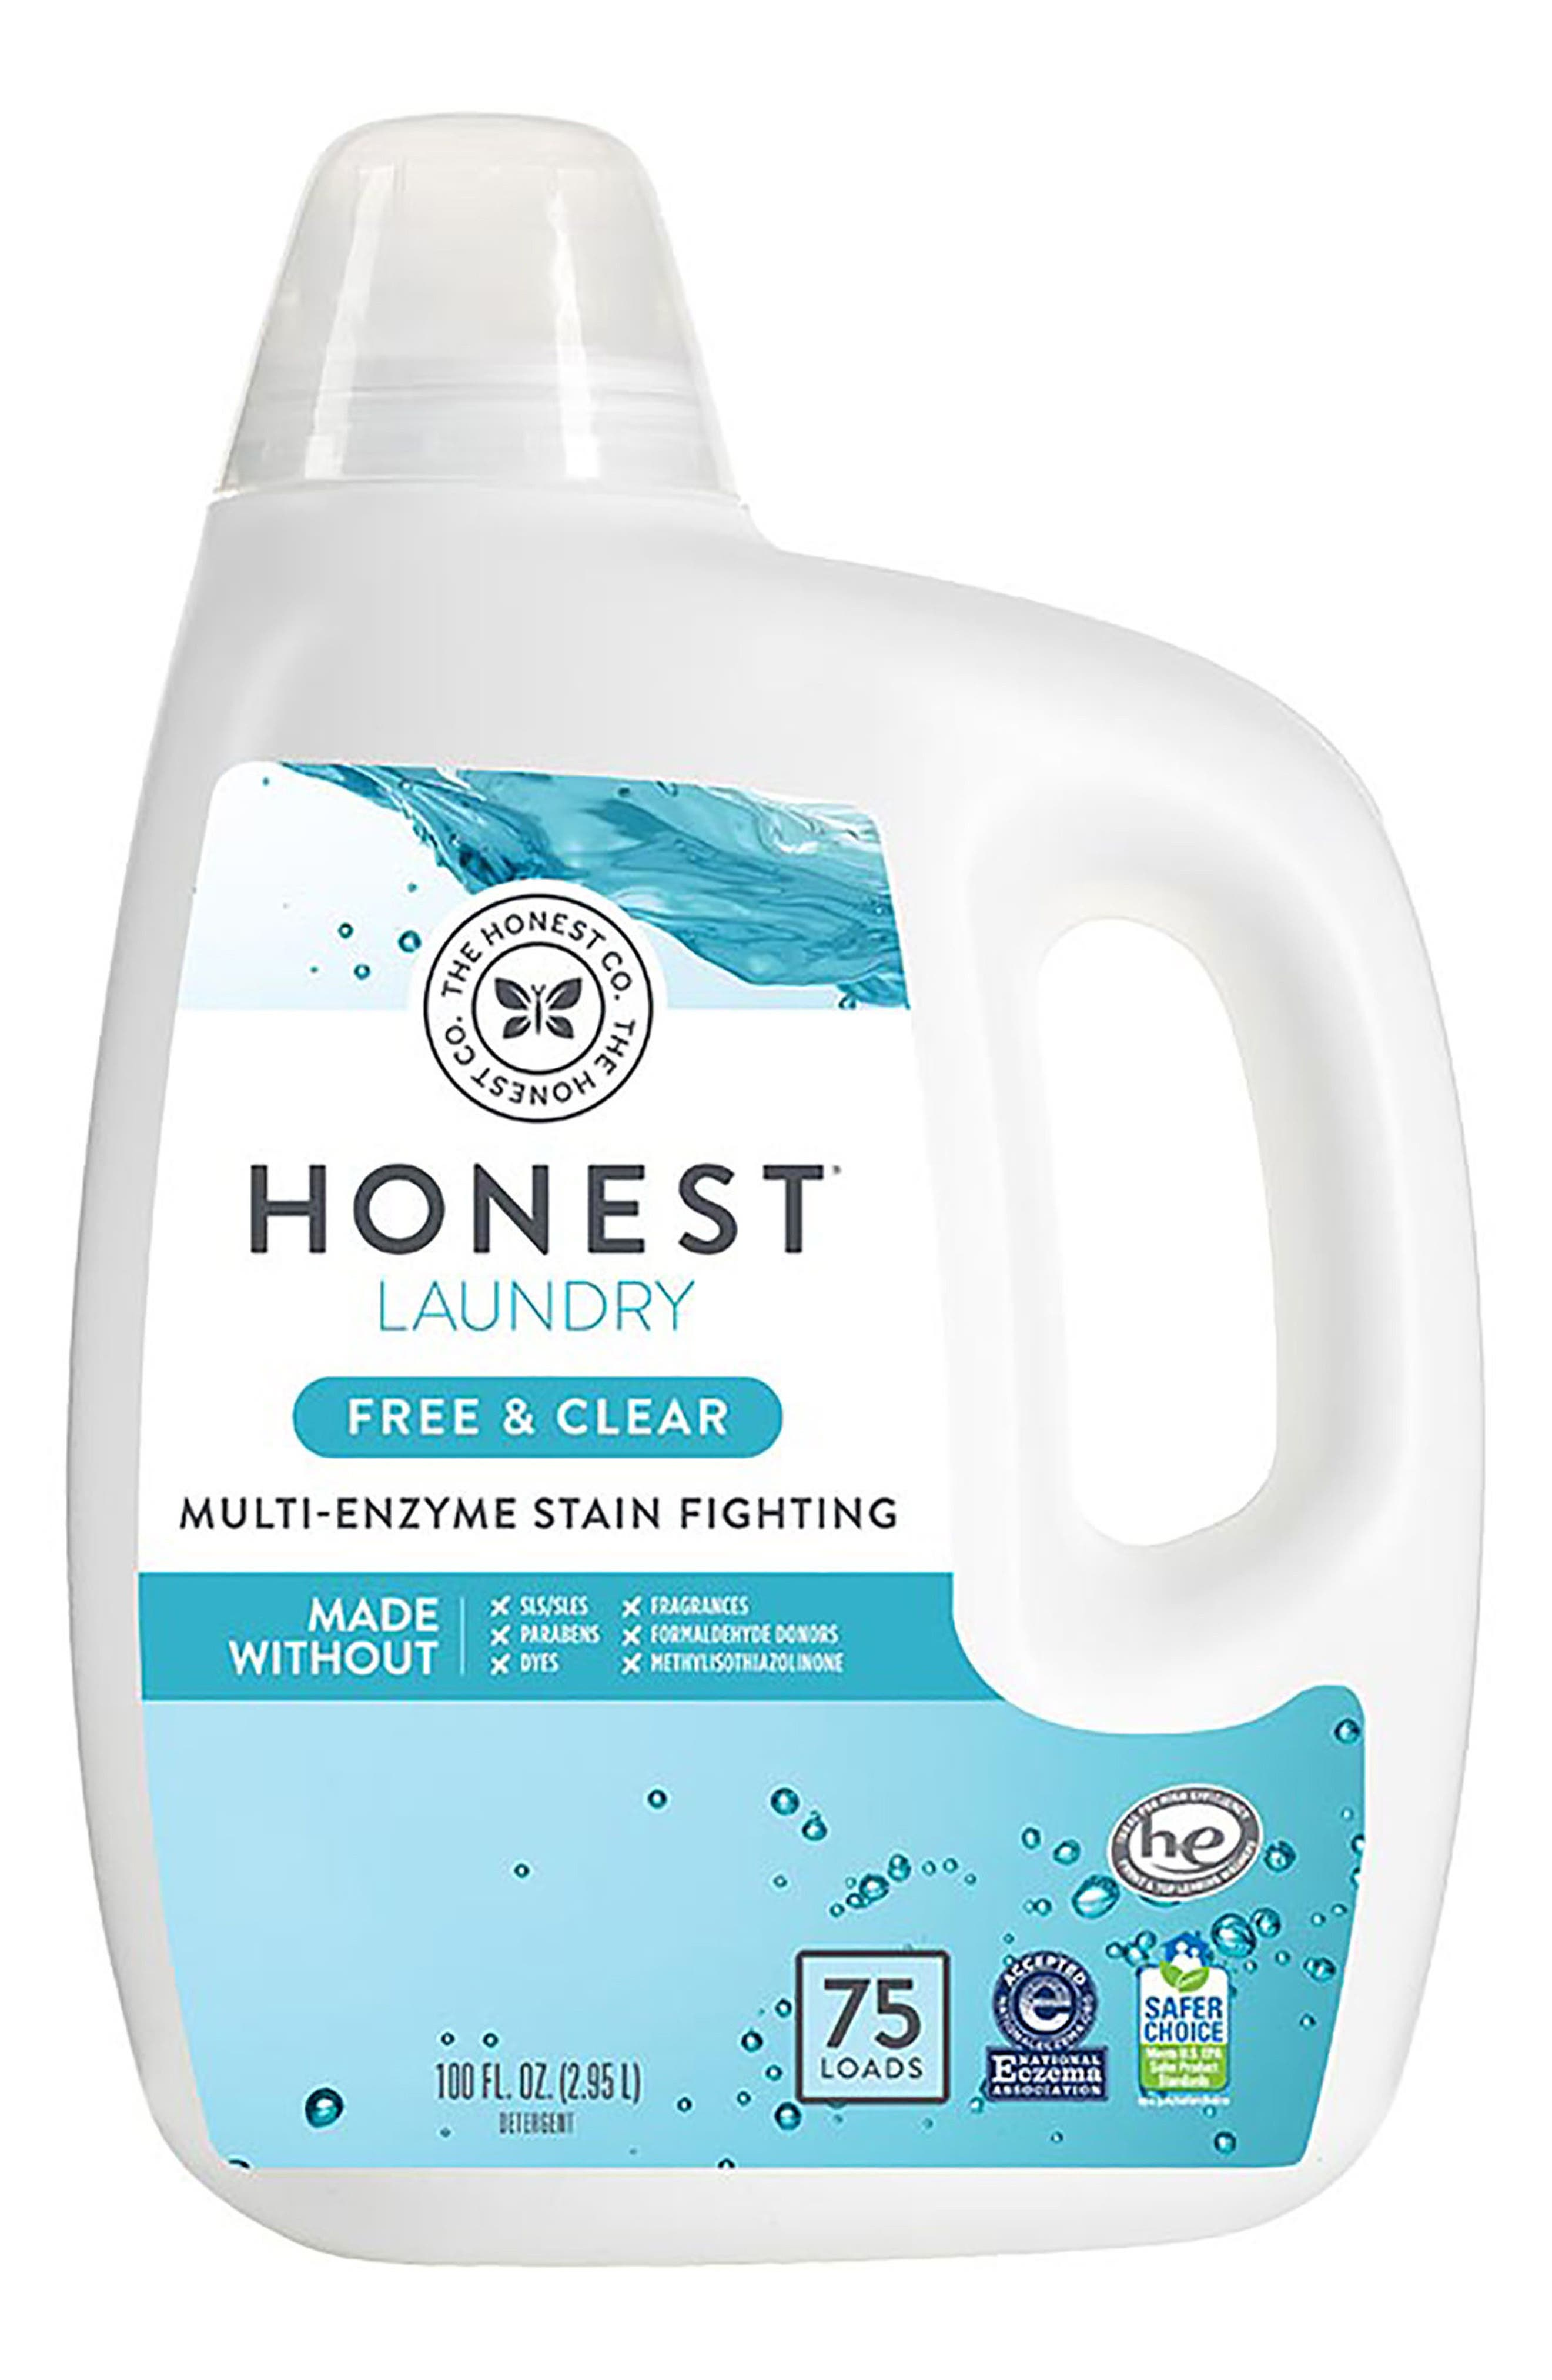 Free & Clear Laundry Detergent,                         Main,                         color, Free/ Clear